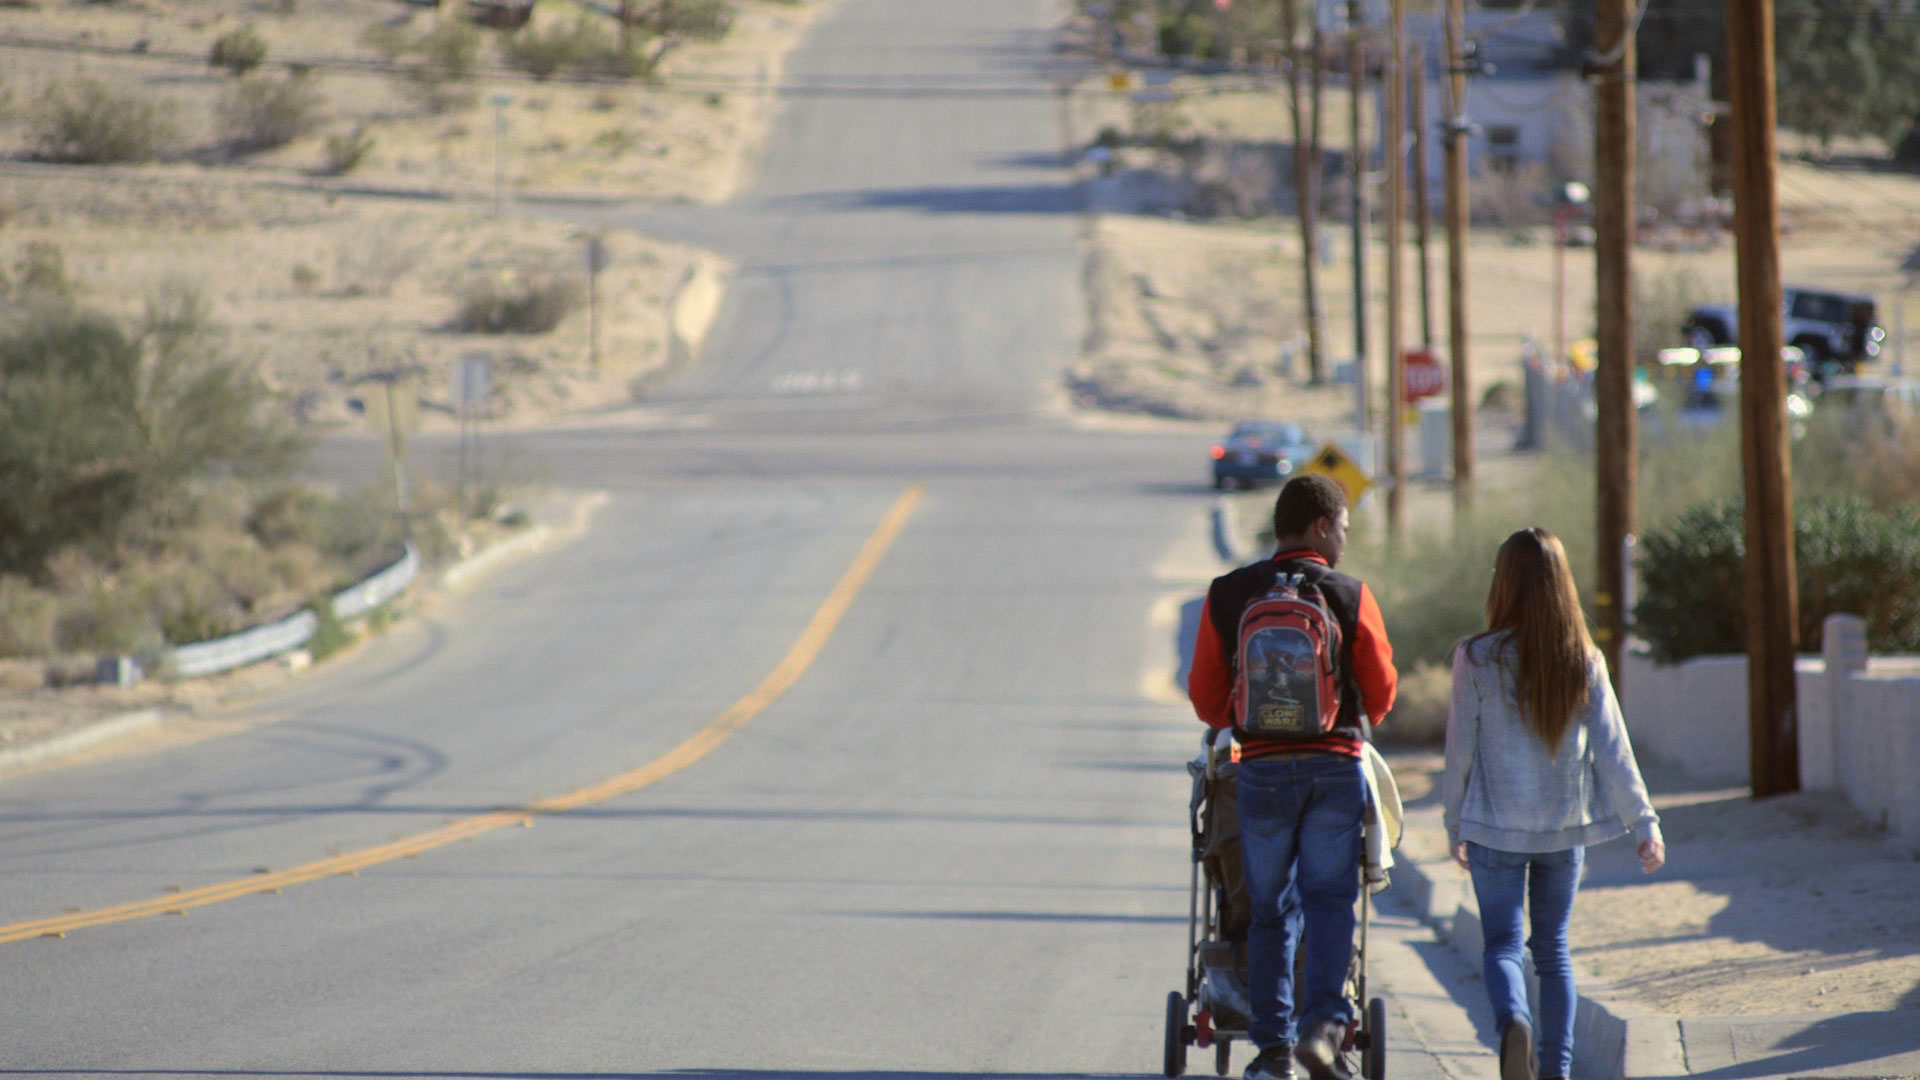 Students Lee Bridges and Layla Schneider walk with their baby towards a bus stop in Twentynine Palms, CA.